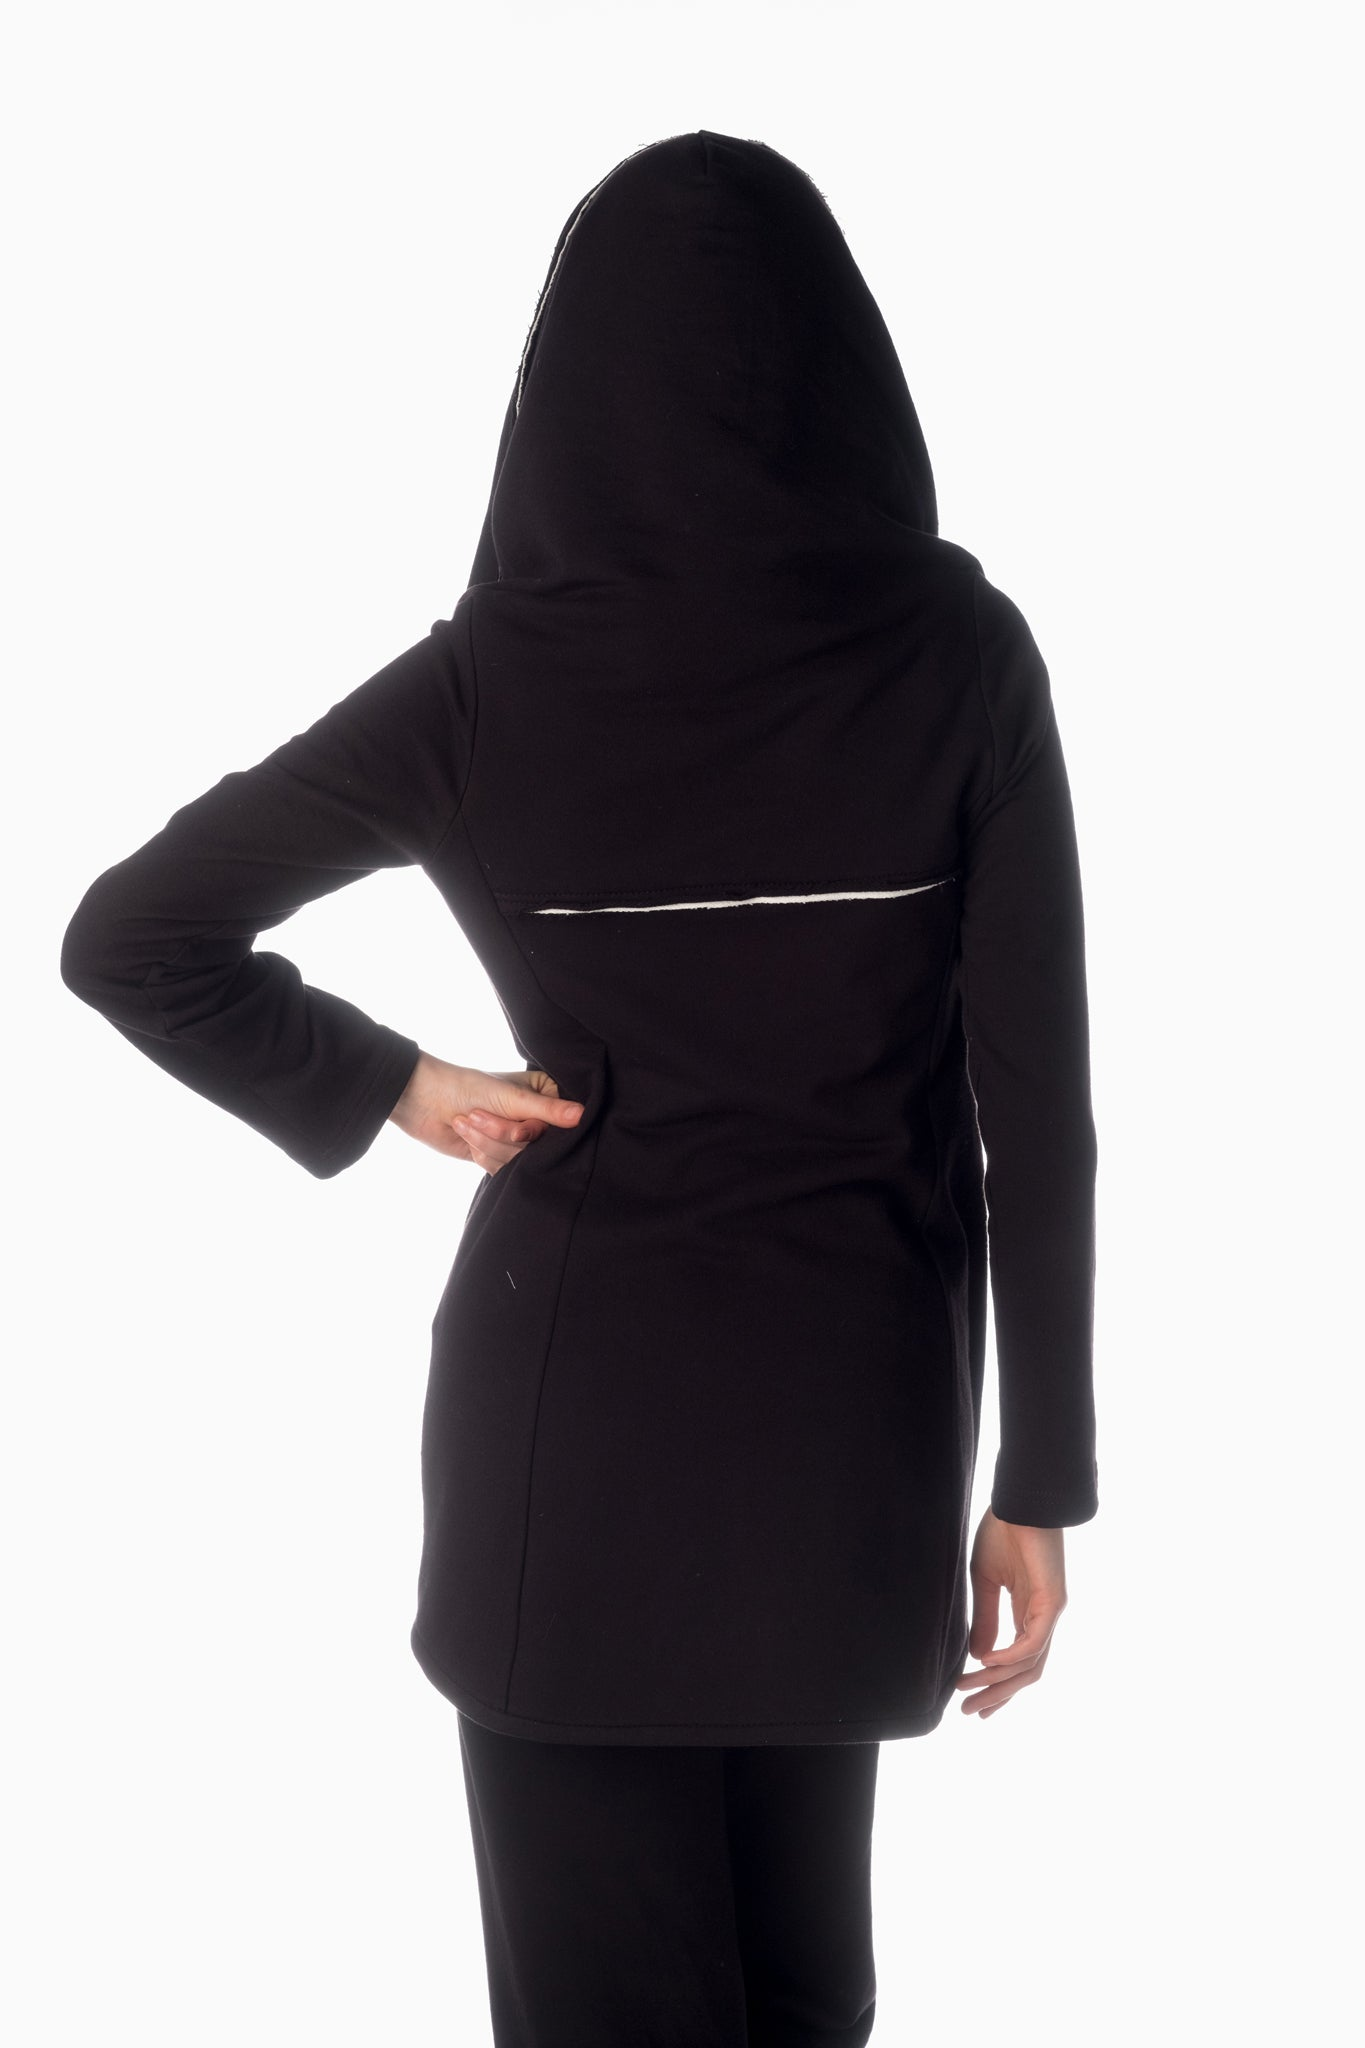 Shesha Hood™ <br>Black | Winter White Lining